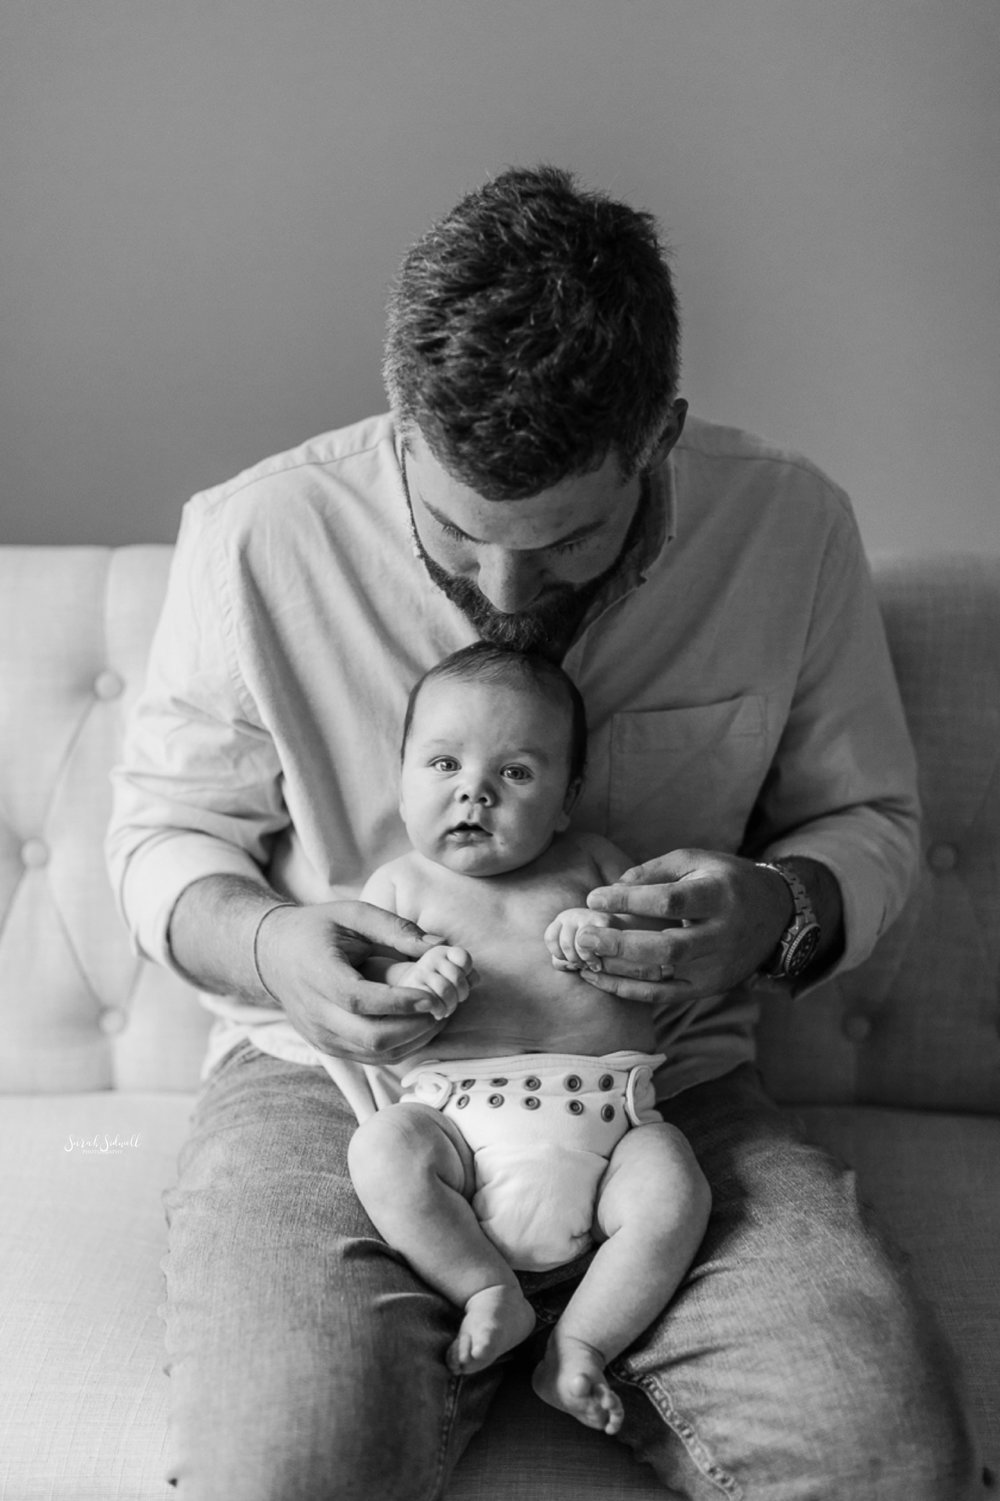 A father sits on a bed with his baby in his lap.